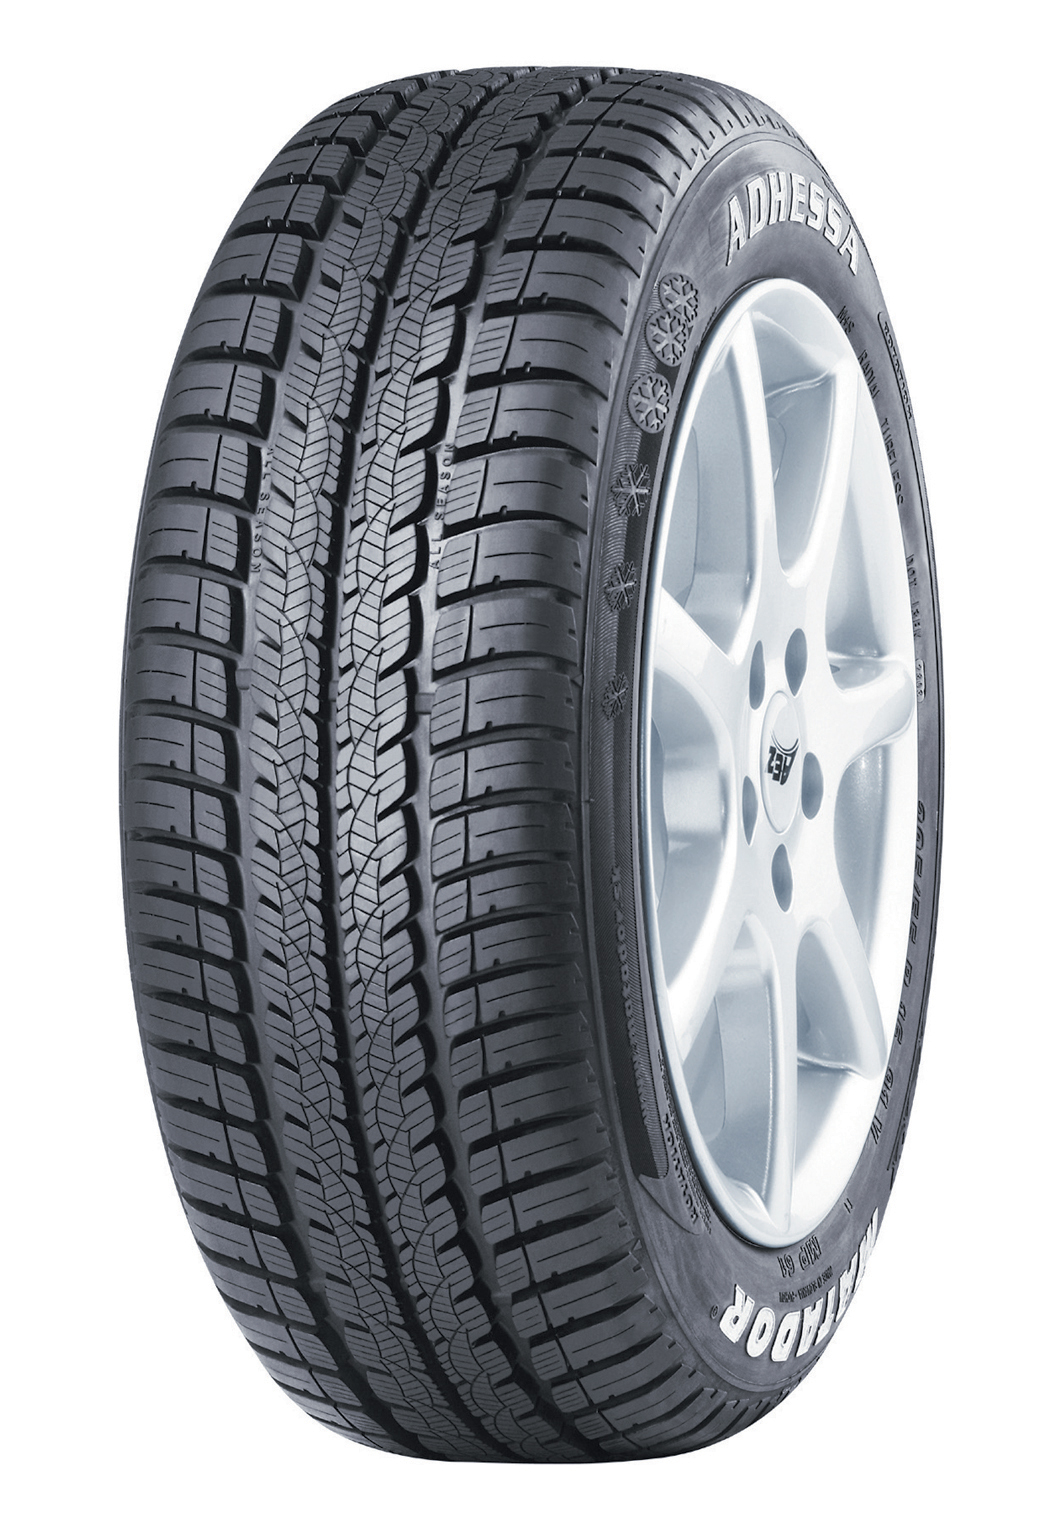 Anvelopa all seasons MATADOR MADE BY CONTINENTAL Adhessa m+s 175/65 R14 82H